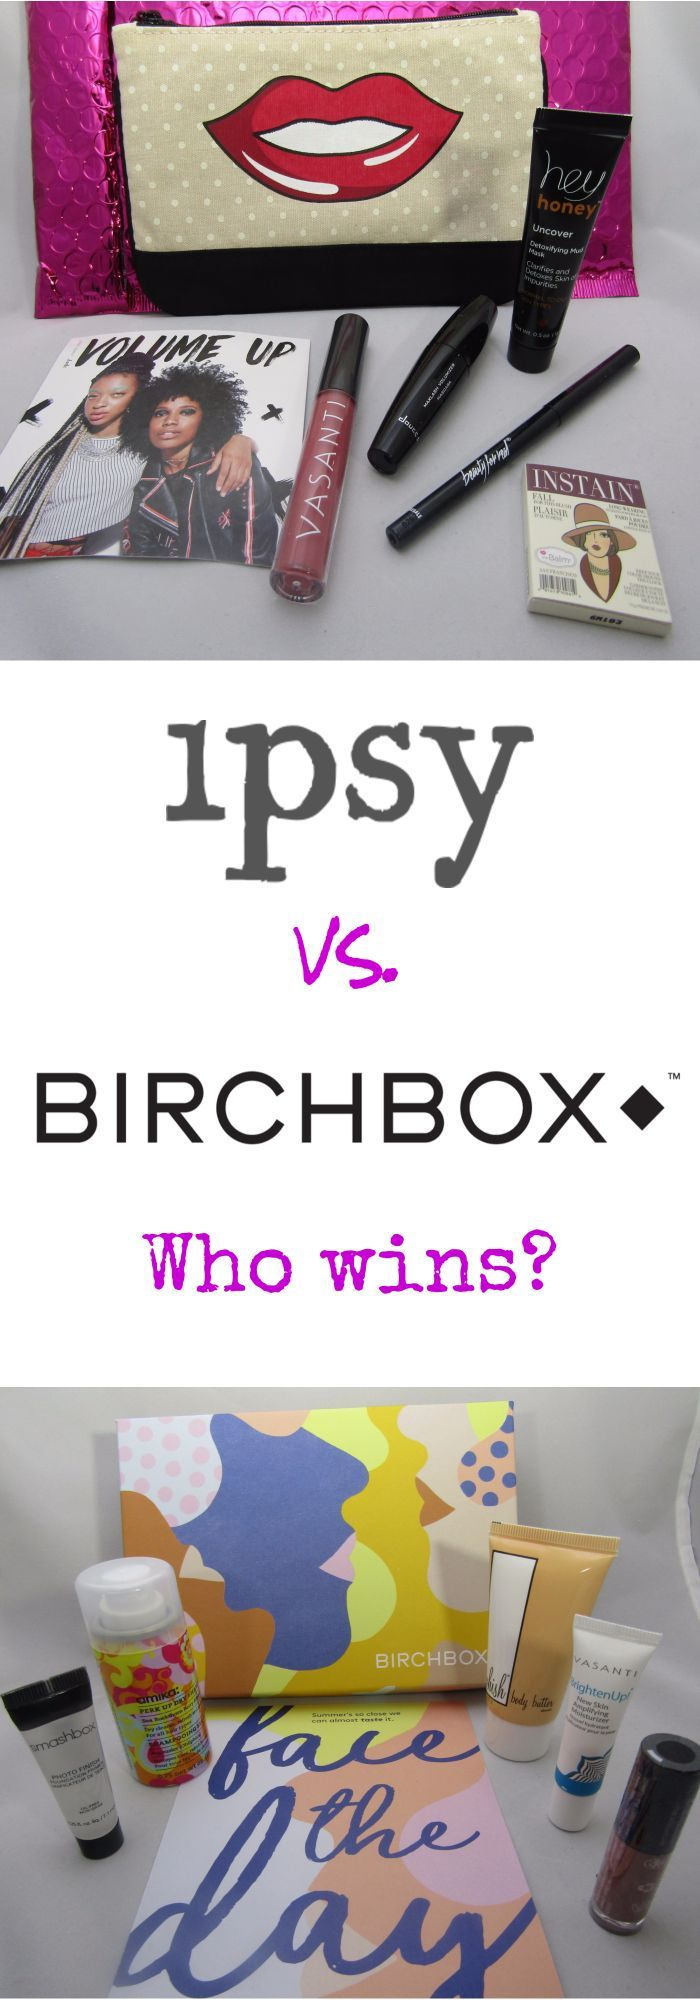 Battle of the Beauty Boxes: Birch Box Vs. Ipsy